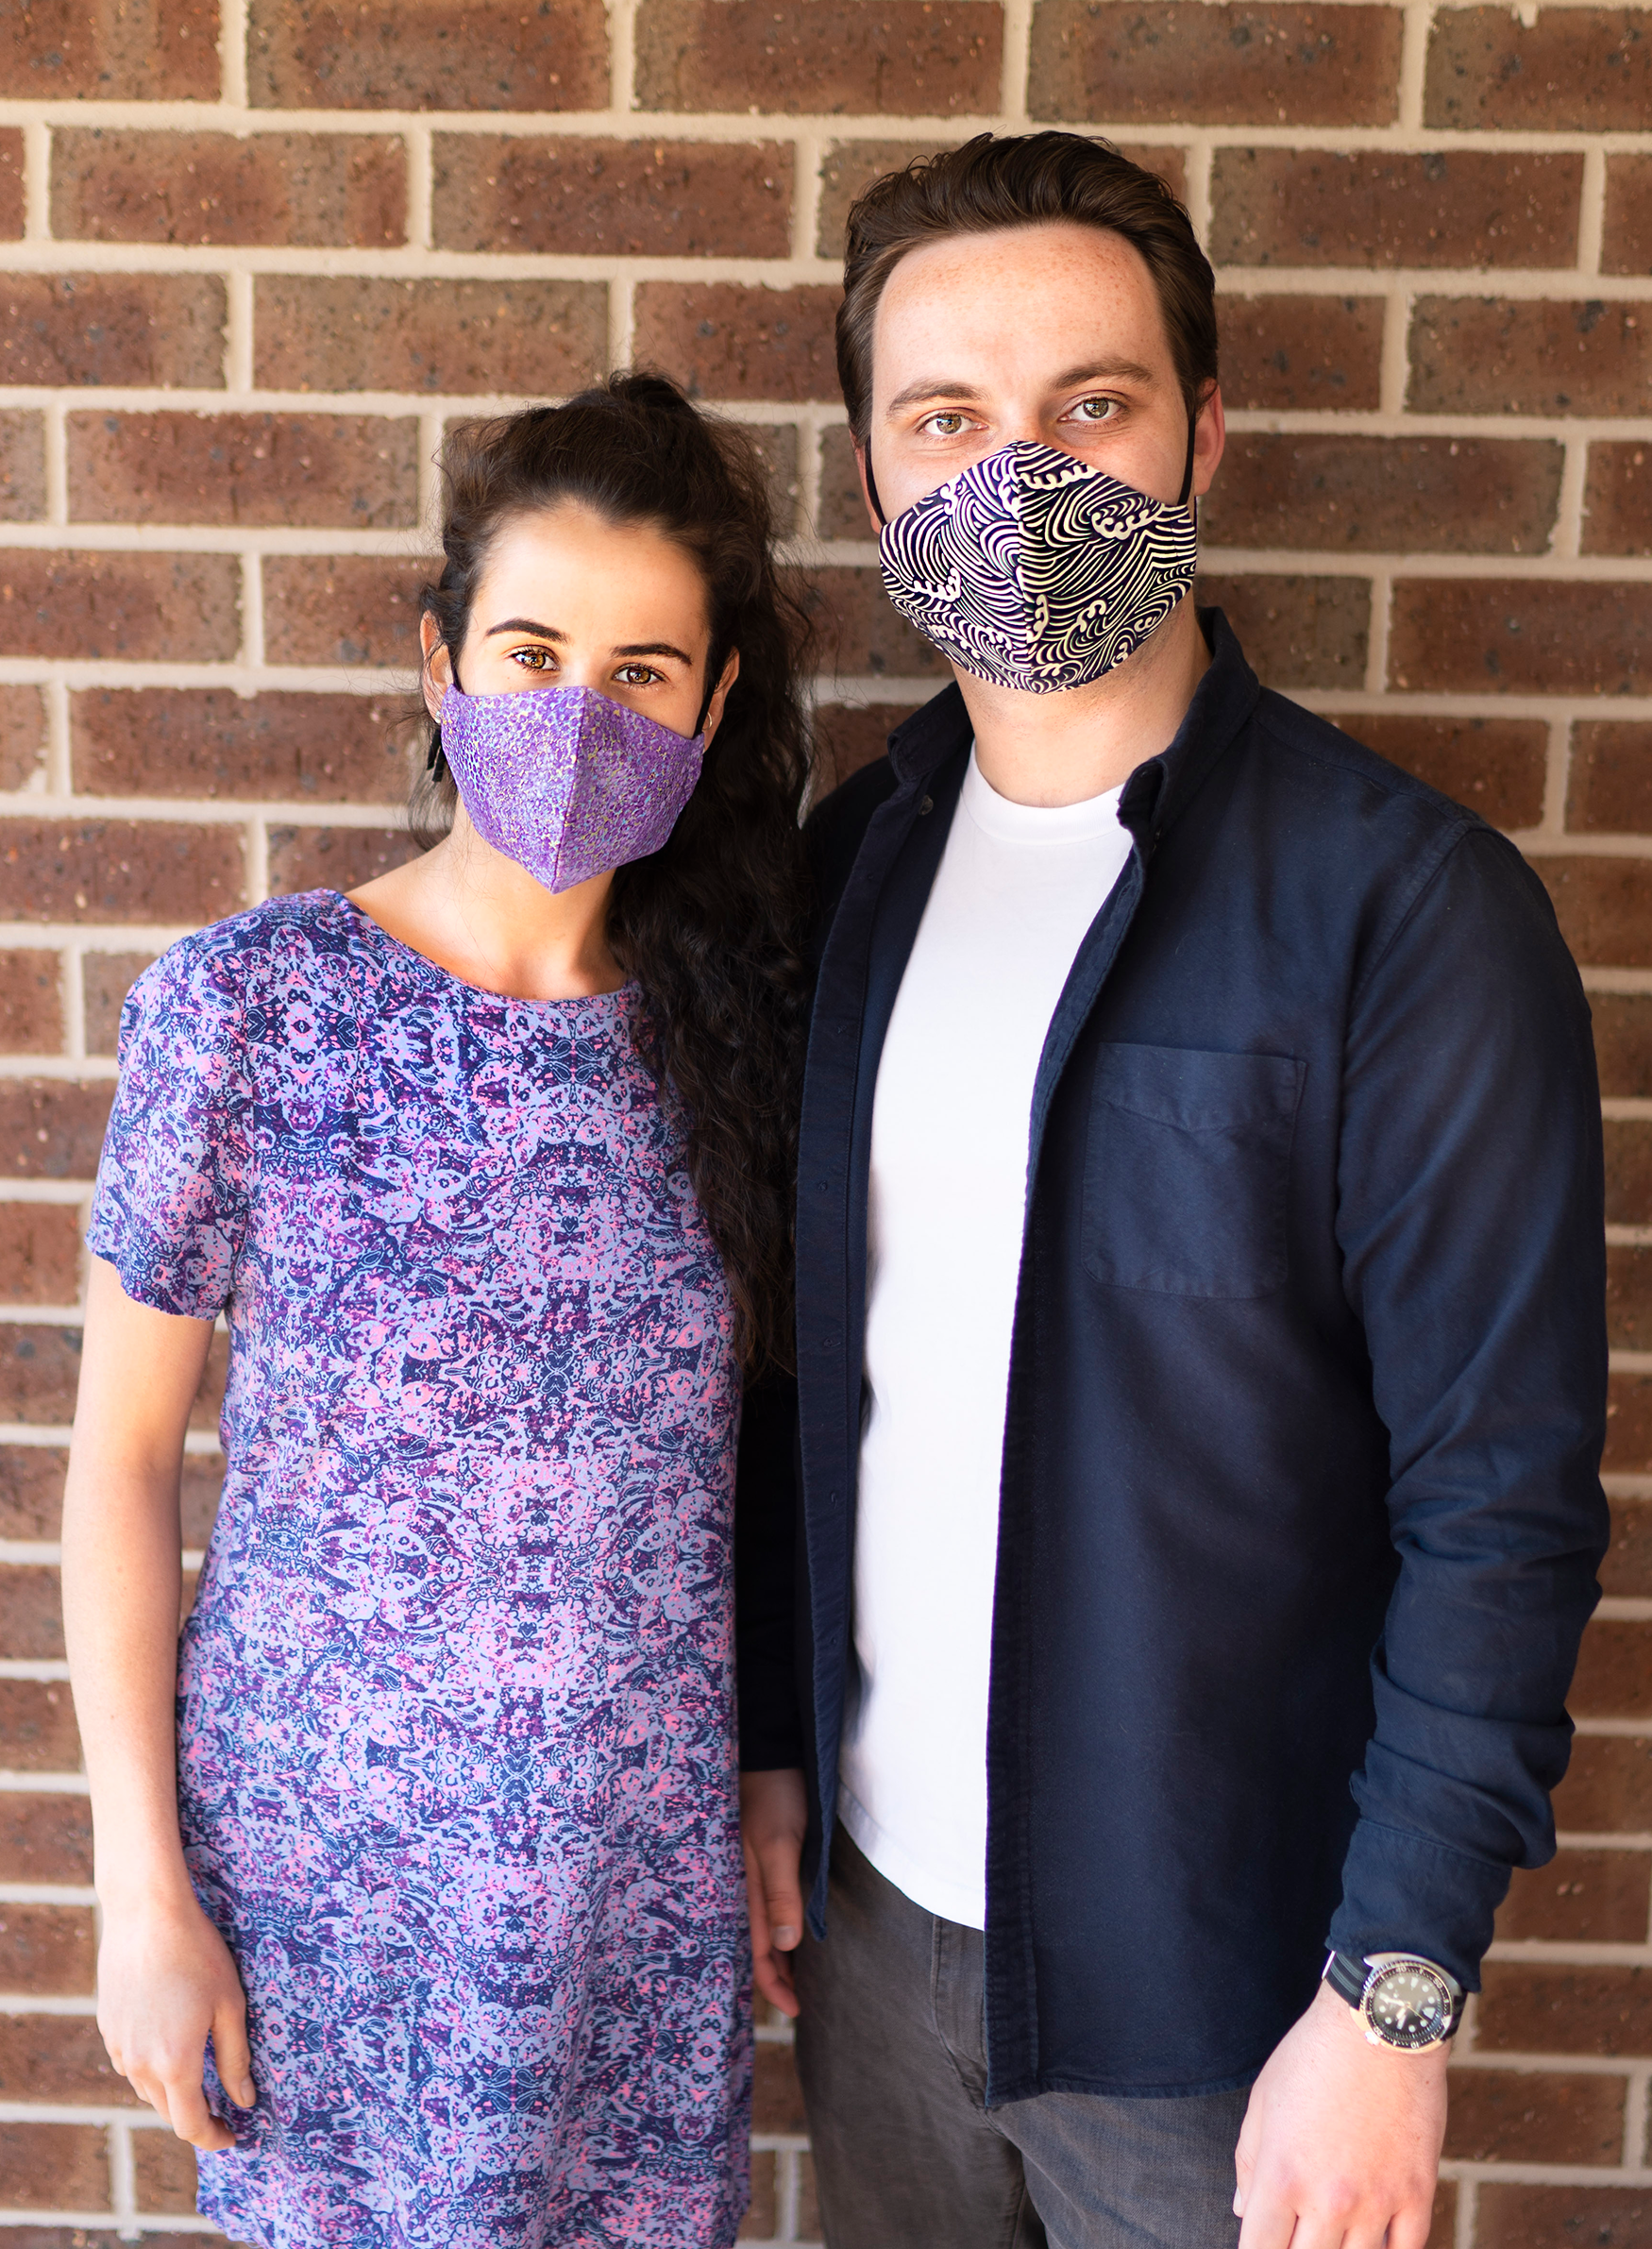 Triple layered face mask made in Melbourne Australia from cotton and poplin featuring a unique shiny glimmering lavender print